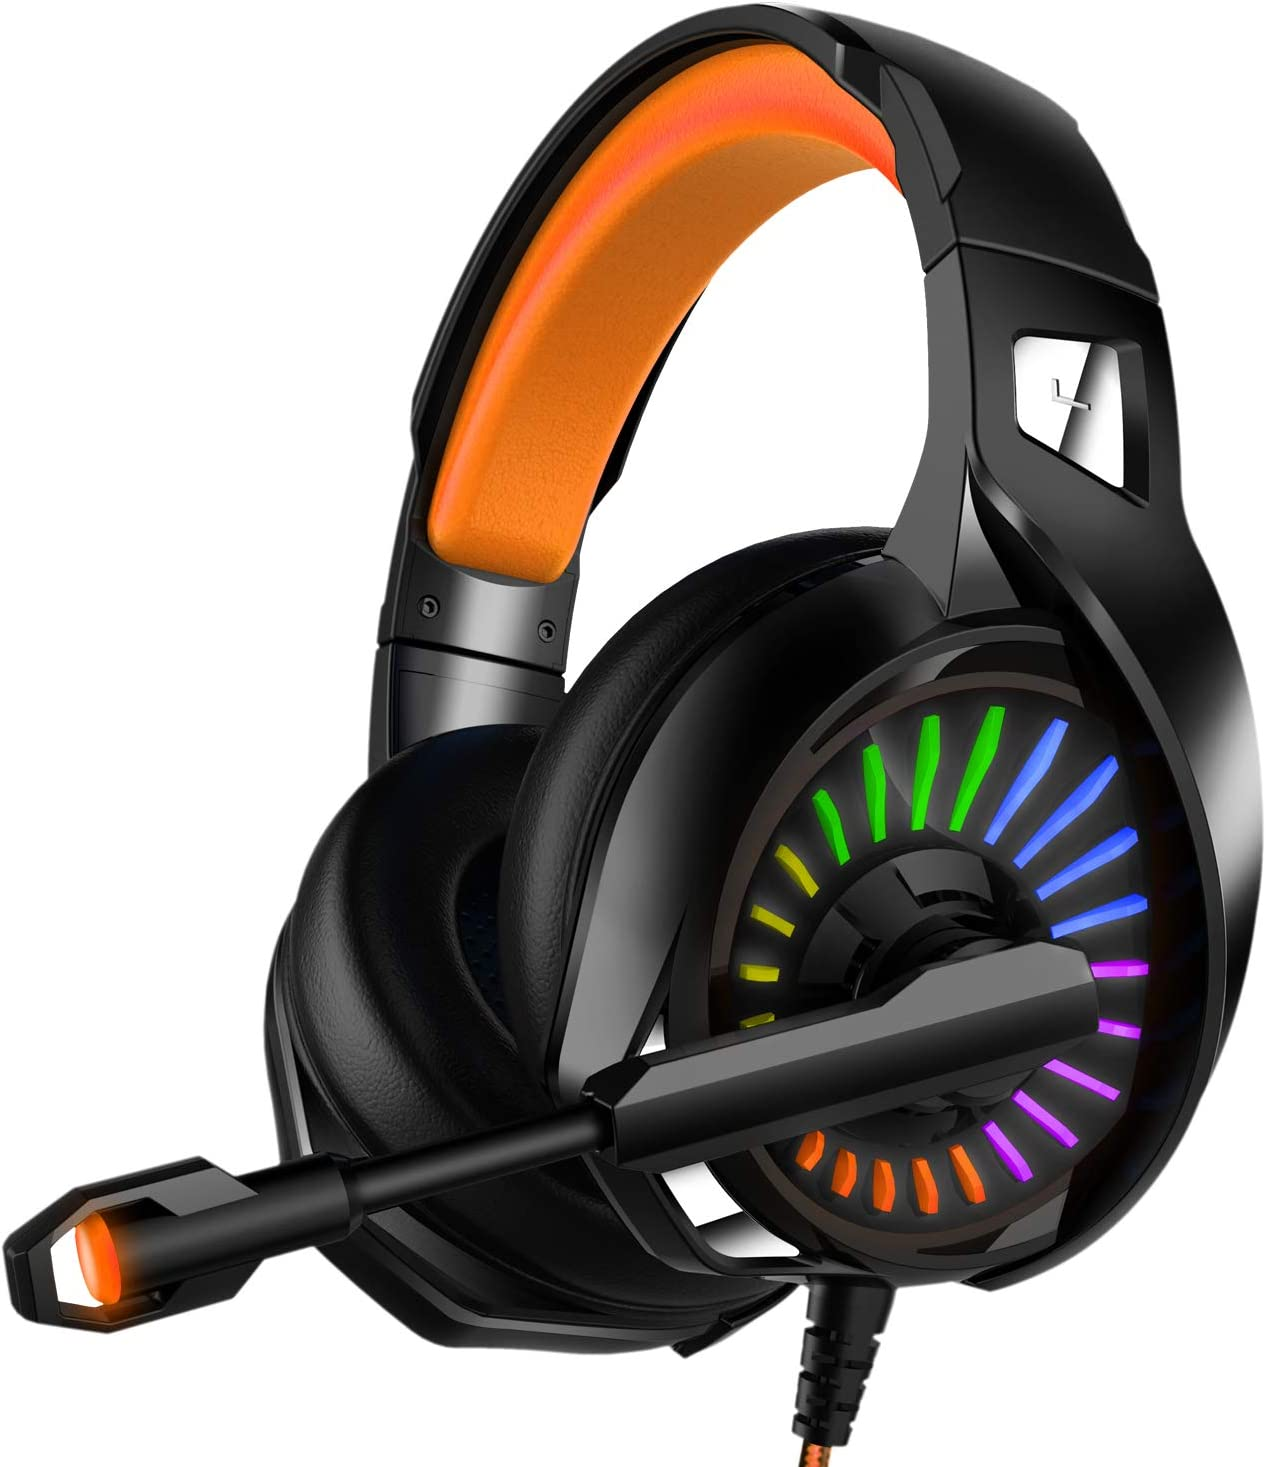 Gaming Headset Hands-Free Gaming Headset Portable Foldable Lightweight Music Headphones with Noise canceling Microphone Color : White, Size : M